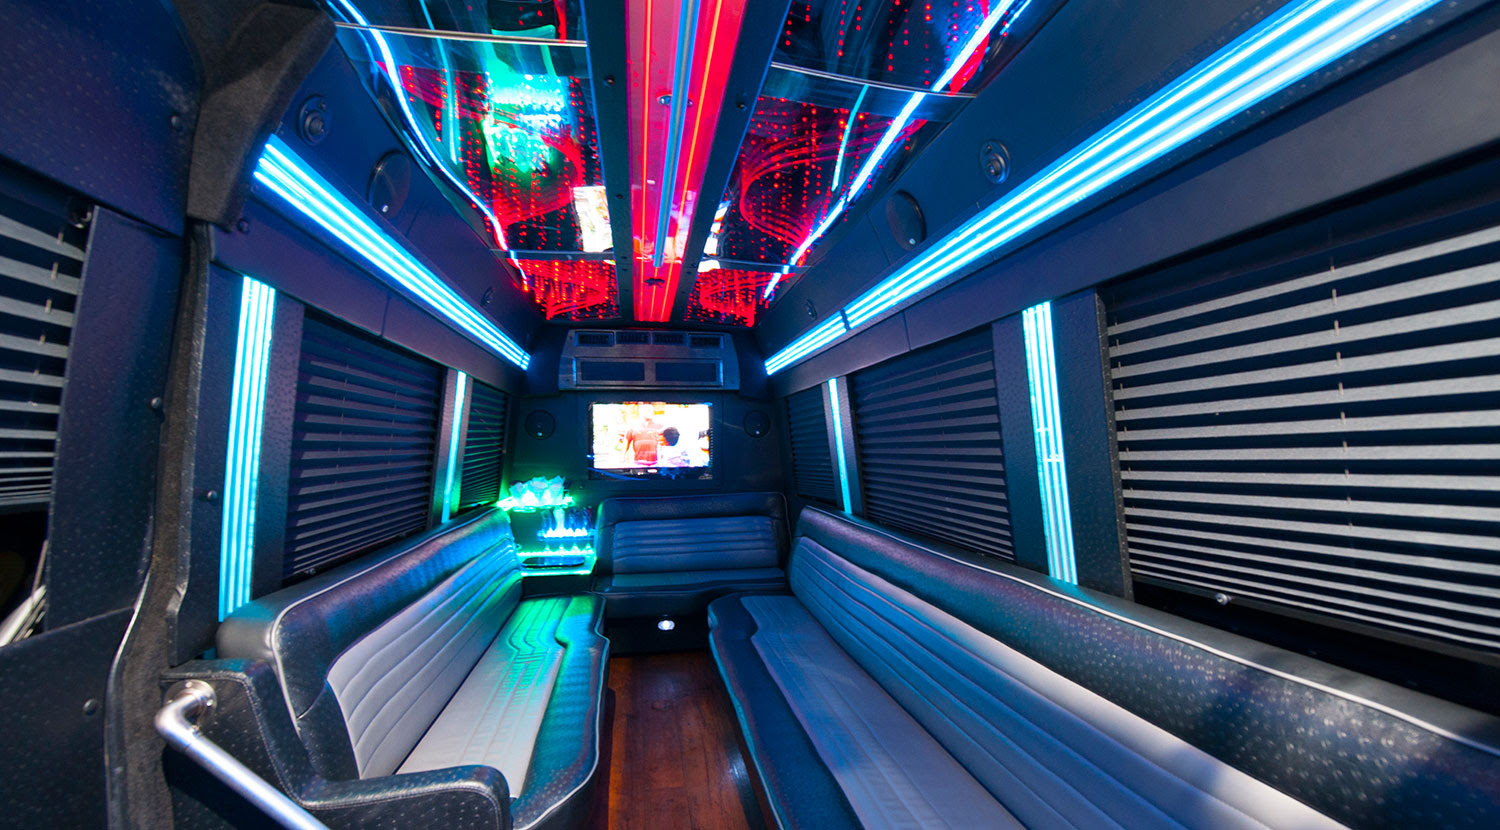 Mercedes Benz Sprinter Limo Party Bus Rental - Atlantic Limo